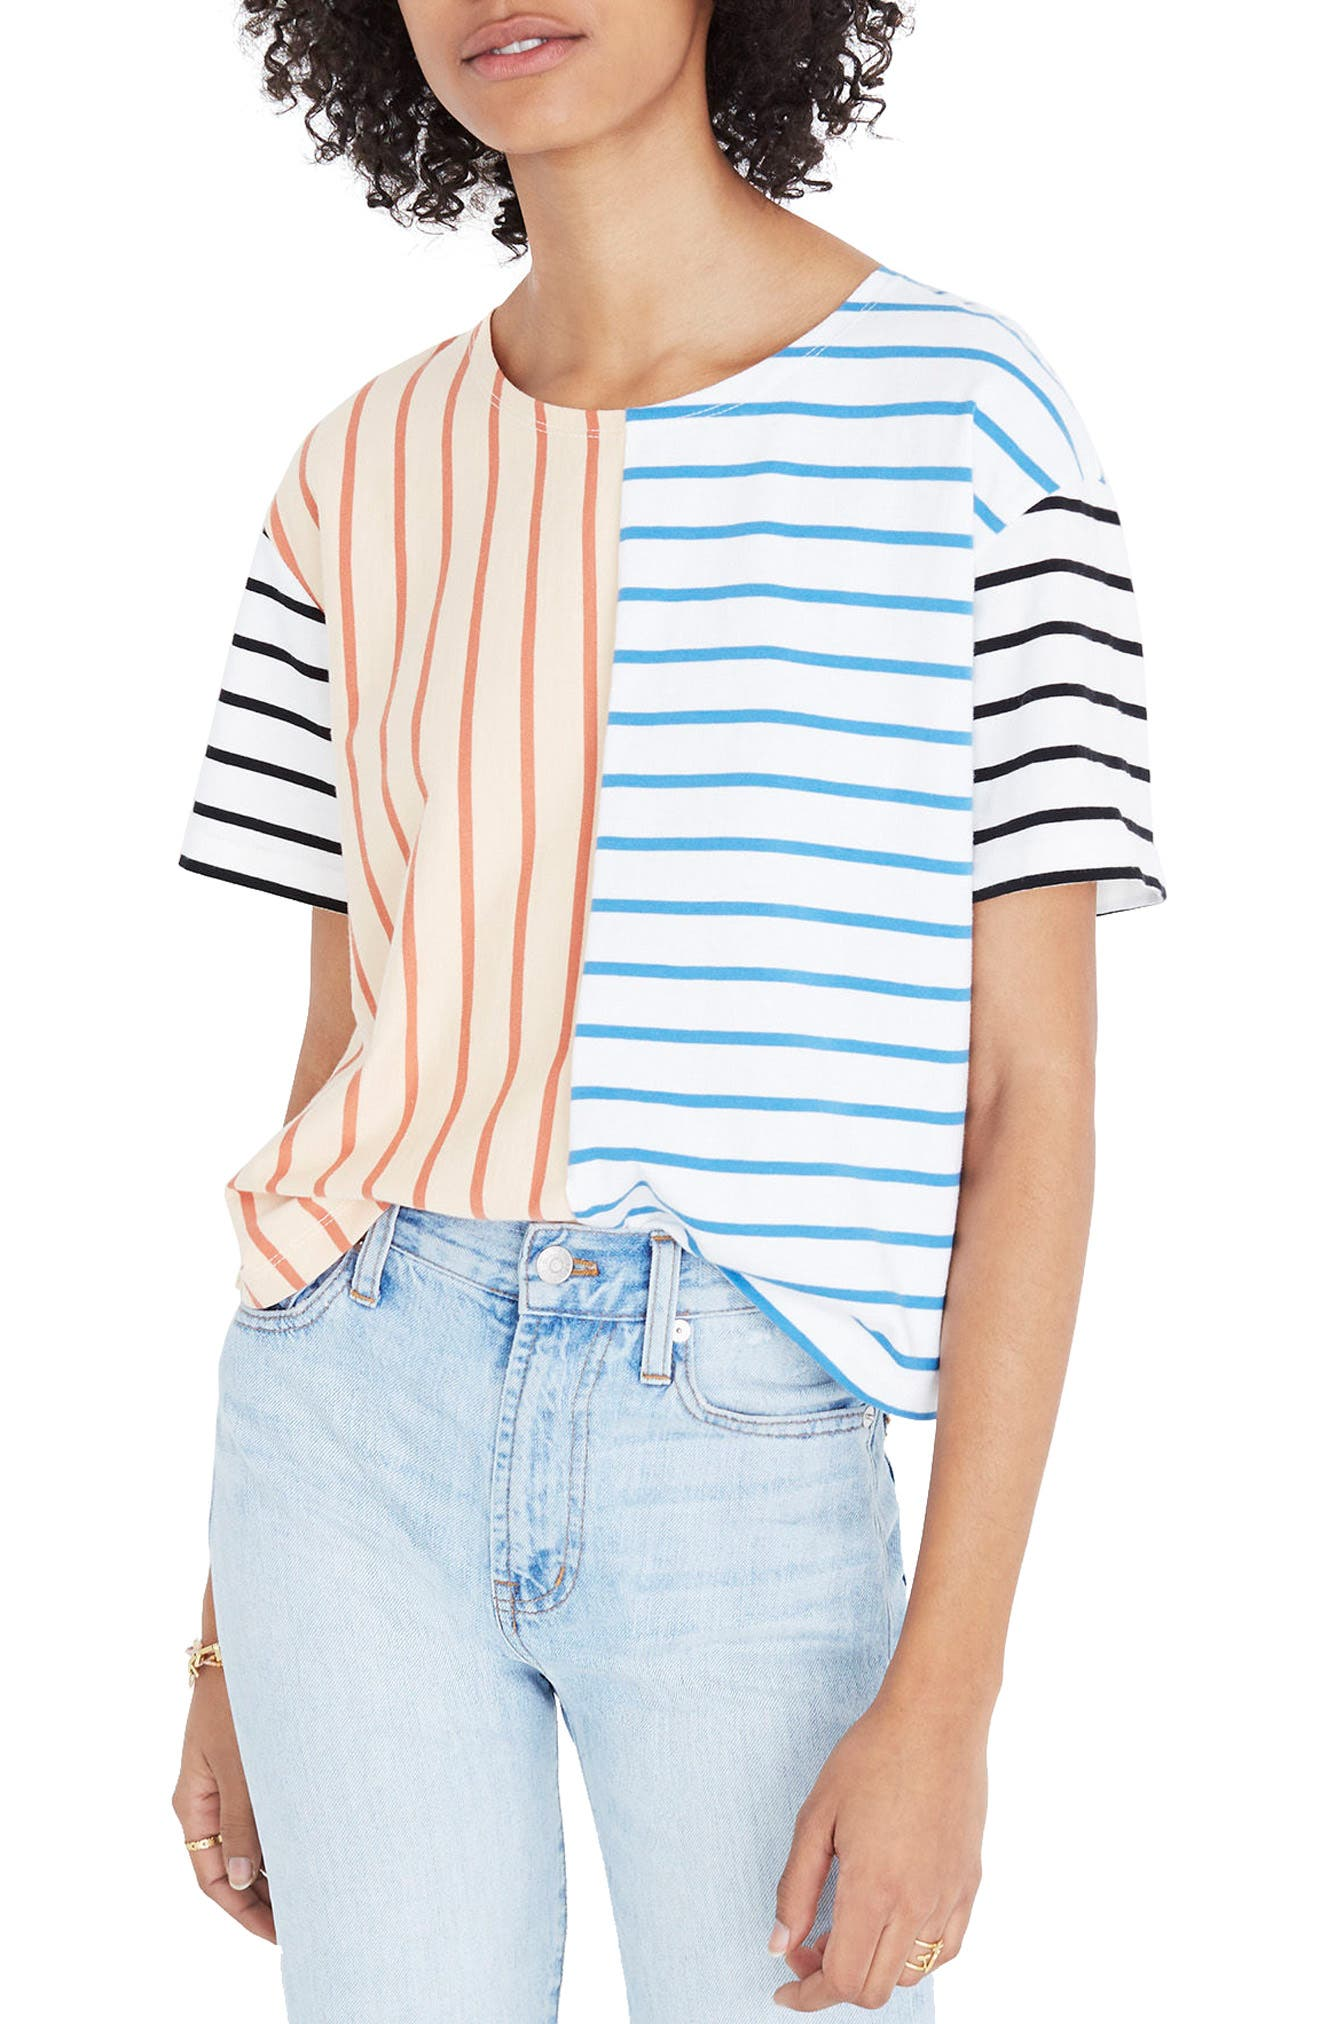 Alternate Image 1 Selected - Madewell Mixed Stripe Easy Crop Tee